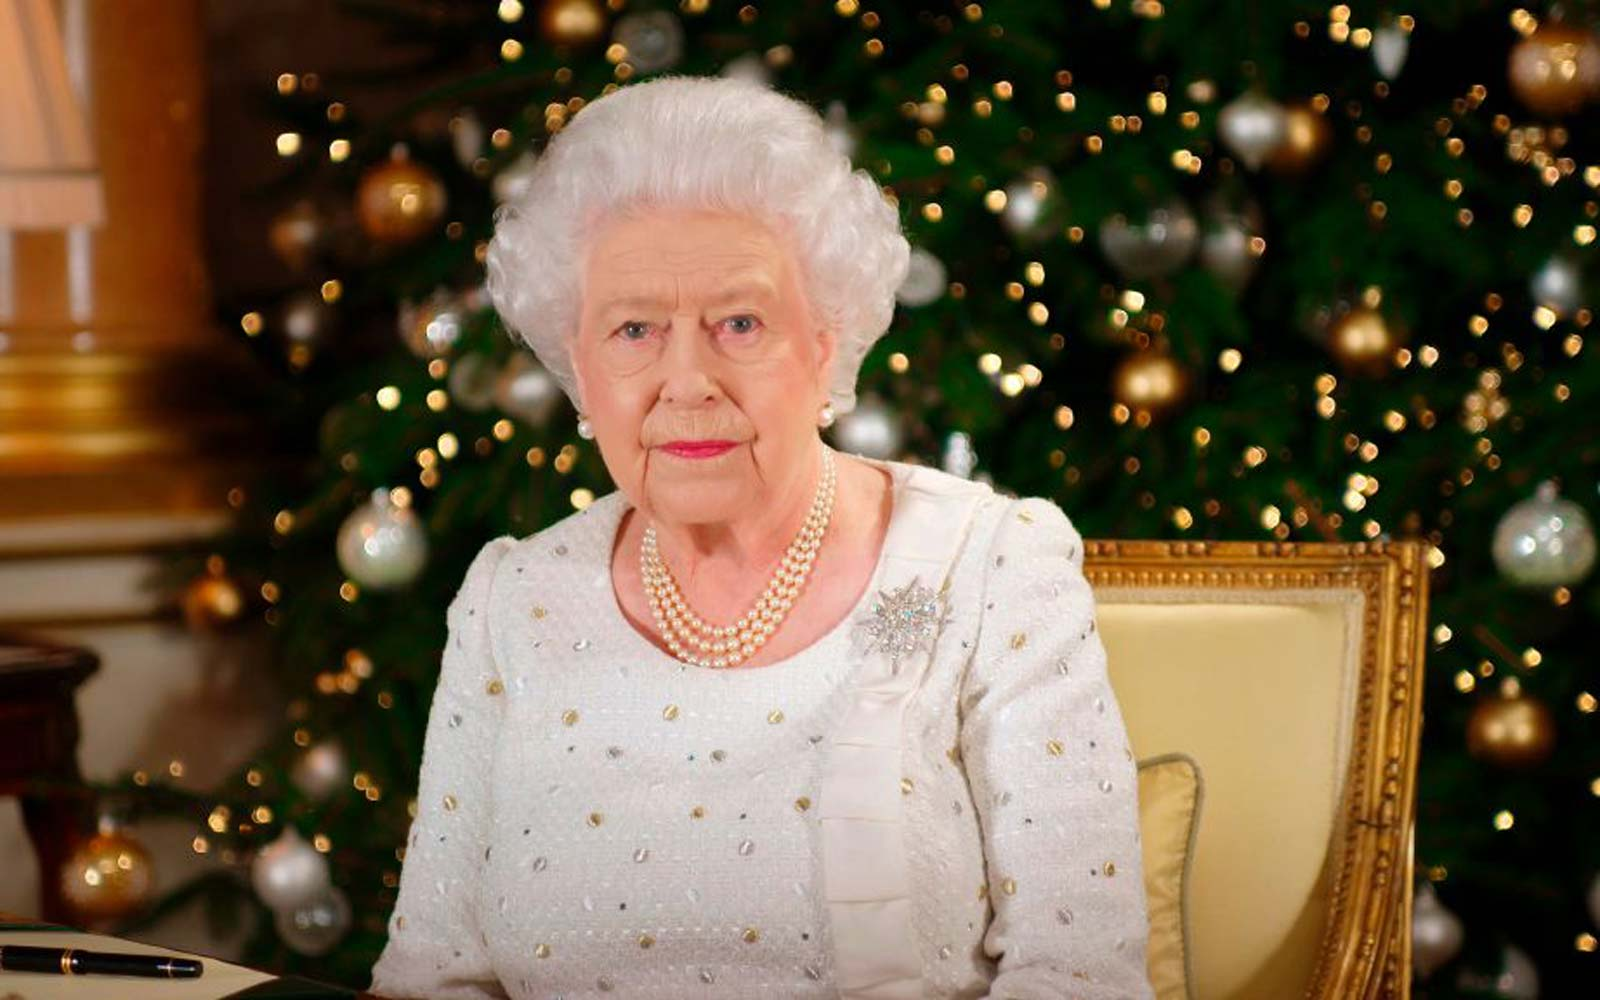 Britain's Queen Elizabeth II poses at a desk in the 1844 Room at Buckingham Palace, London, on December 13, 2017